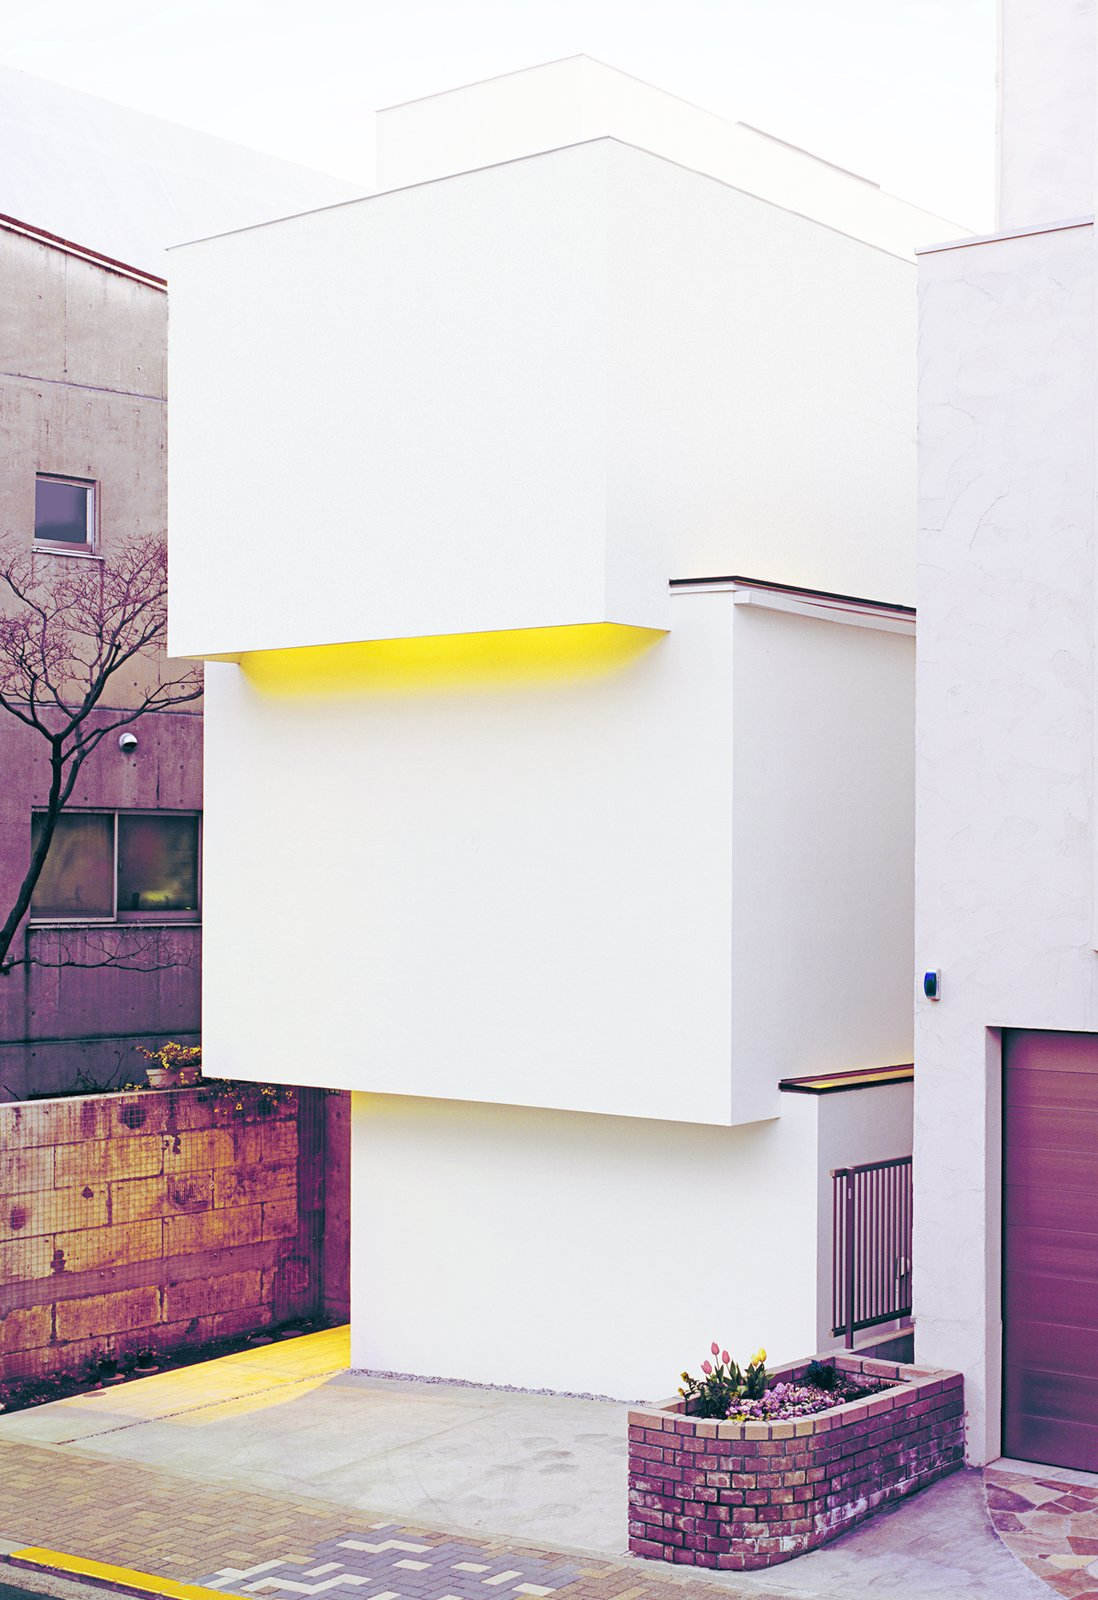 OBI-House by Tetsushi Tominaga, 2013, in Bunkyo-ku, Tokyo Prefecture  Unabashedly Strange Houses in Japan by Luke Hopping from Boldly Modern Japanese Houses